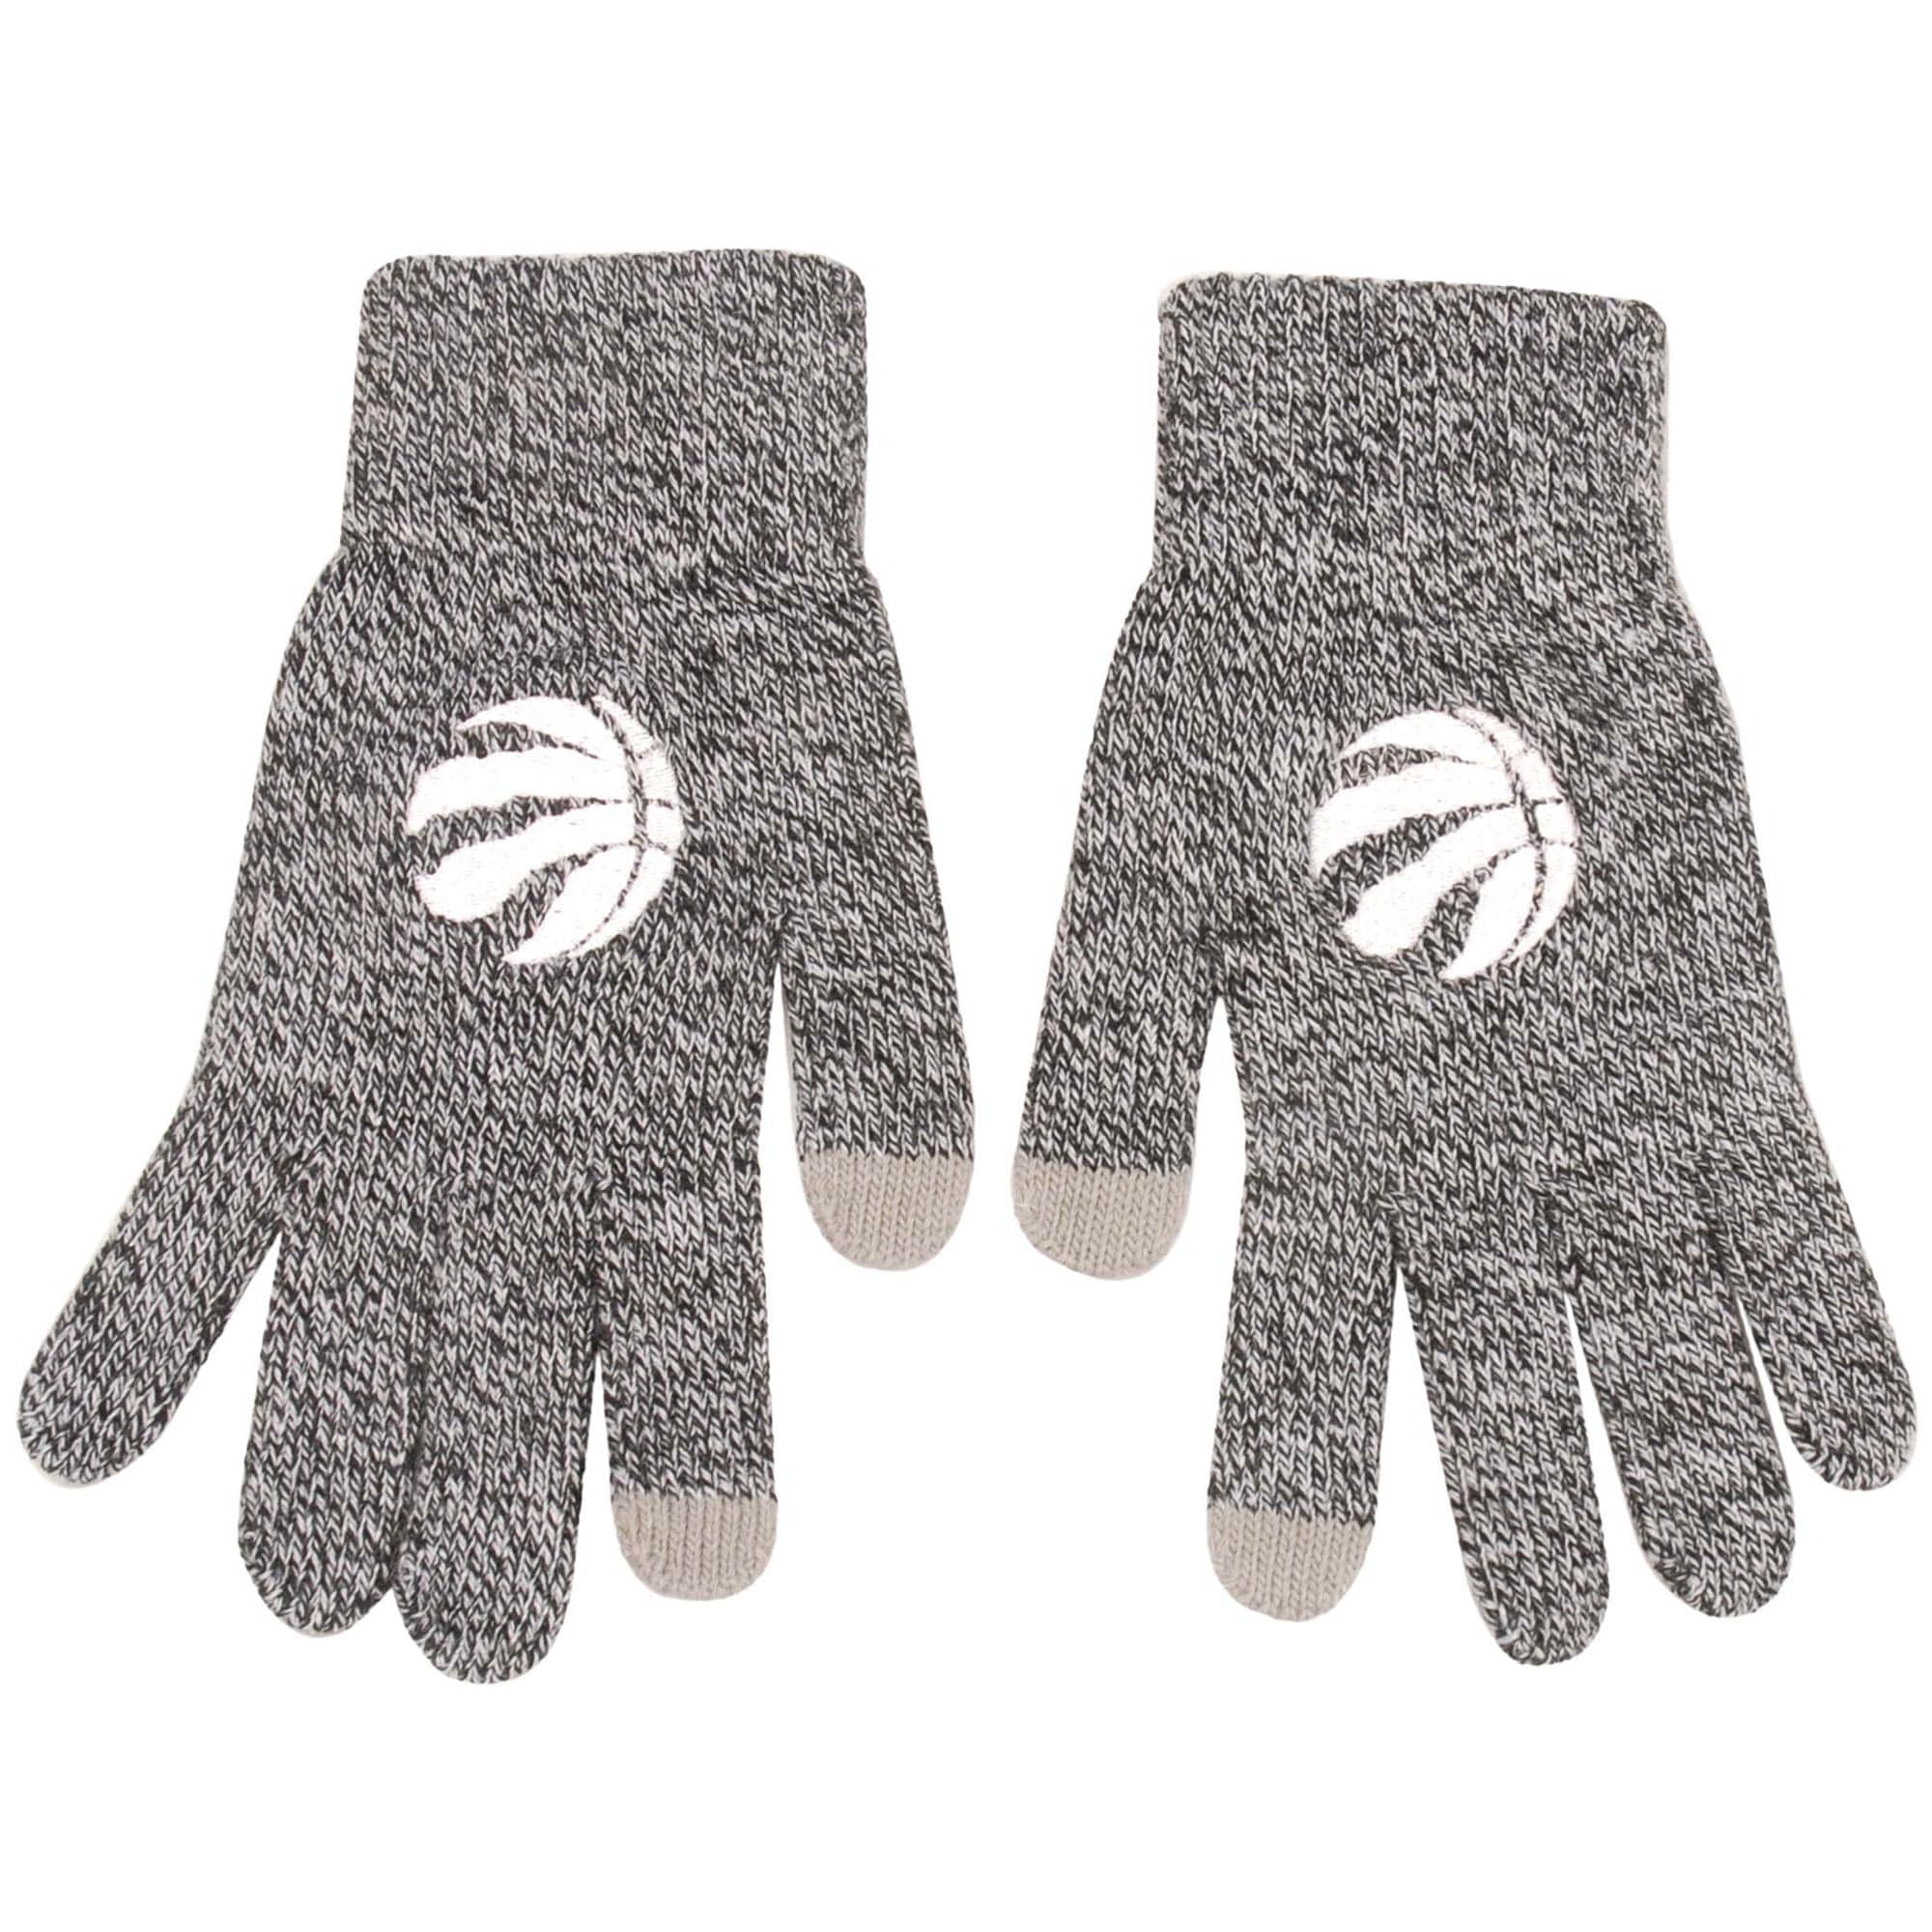 Toronto Raptors Knit Gloves - Gray